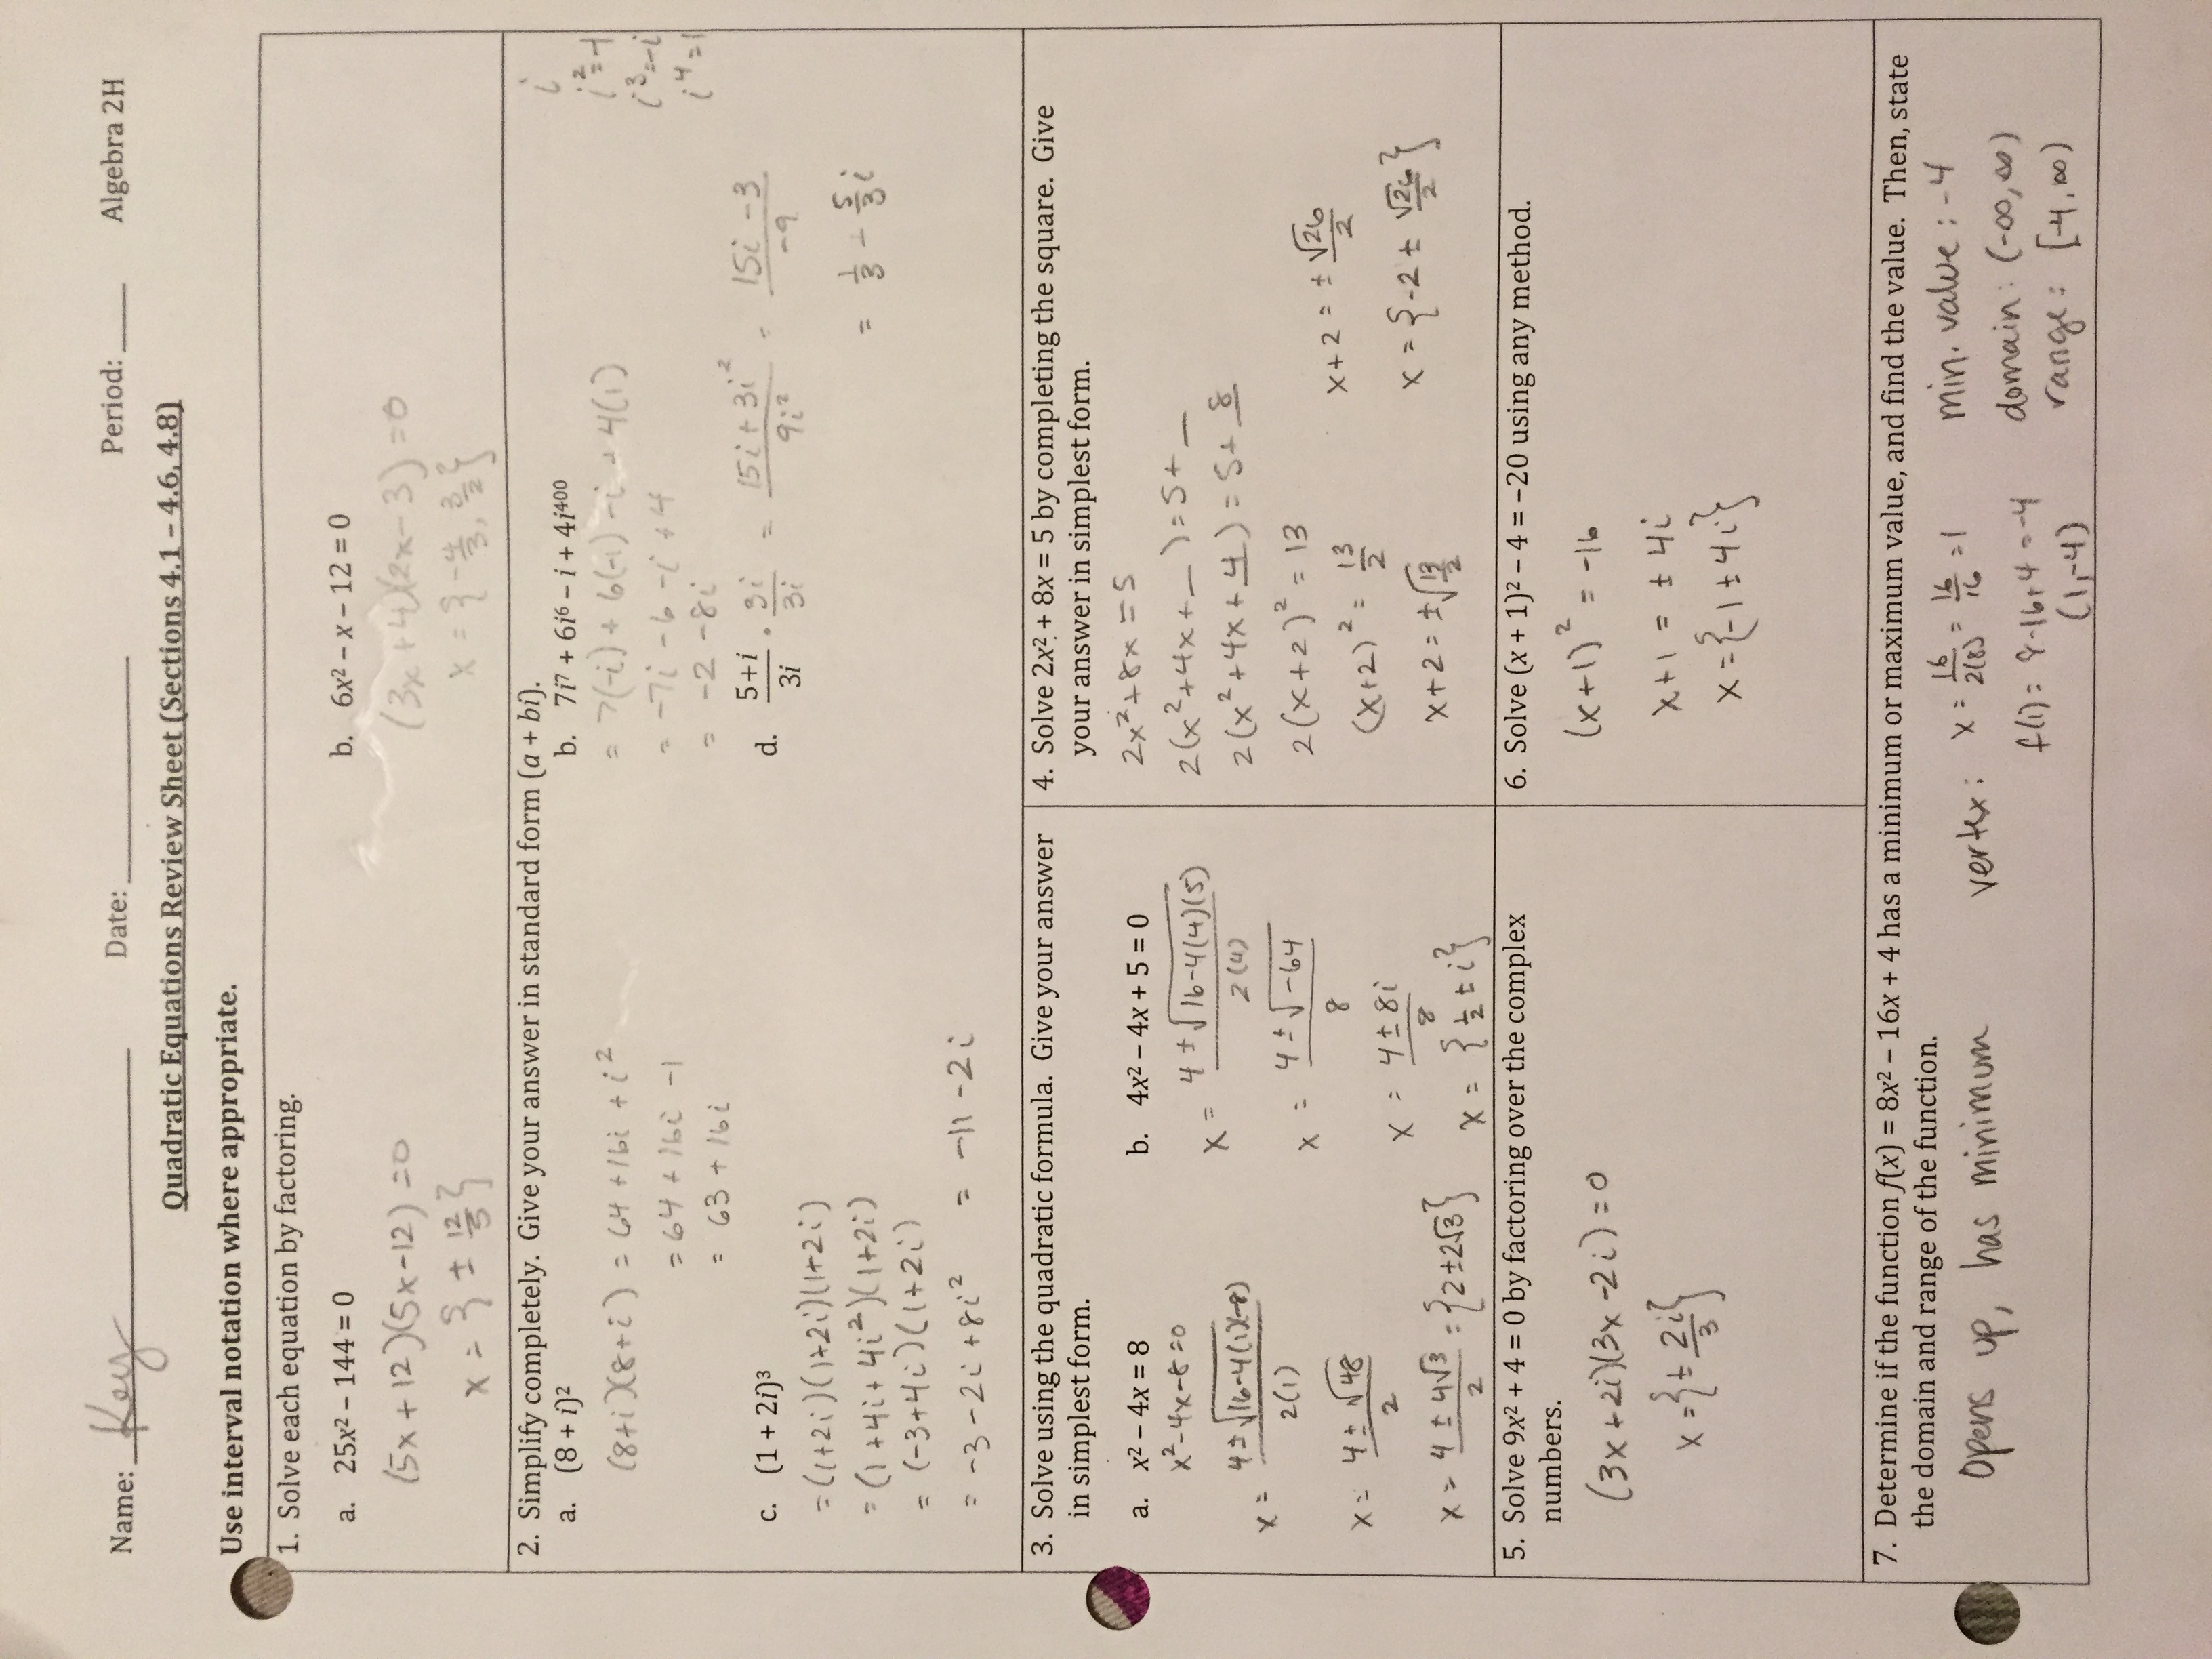 quadratics assignment 121 graphing quadratics in standard form a141 recognize the characteristic shape of the graph of a quadratic function and describe its line of symmetry, vertex, and intercepts.